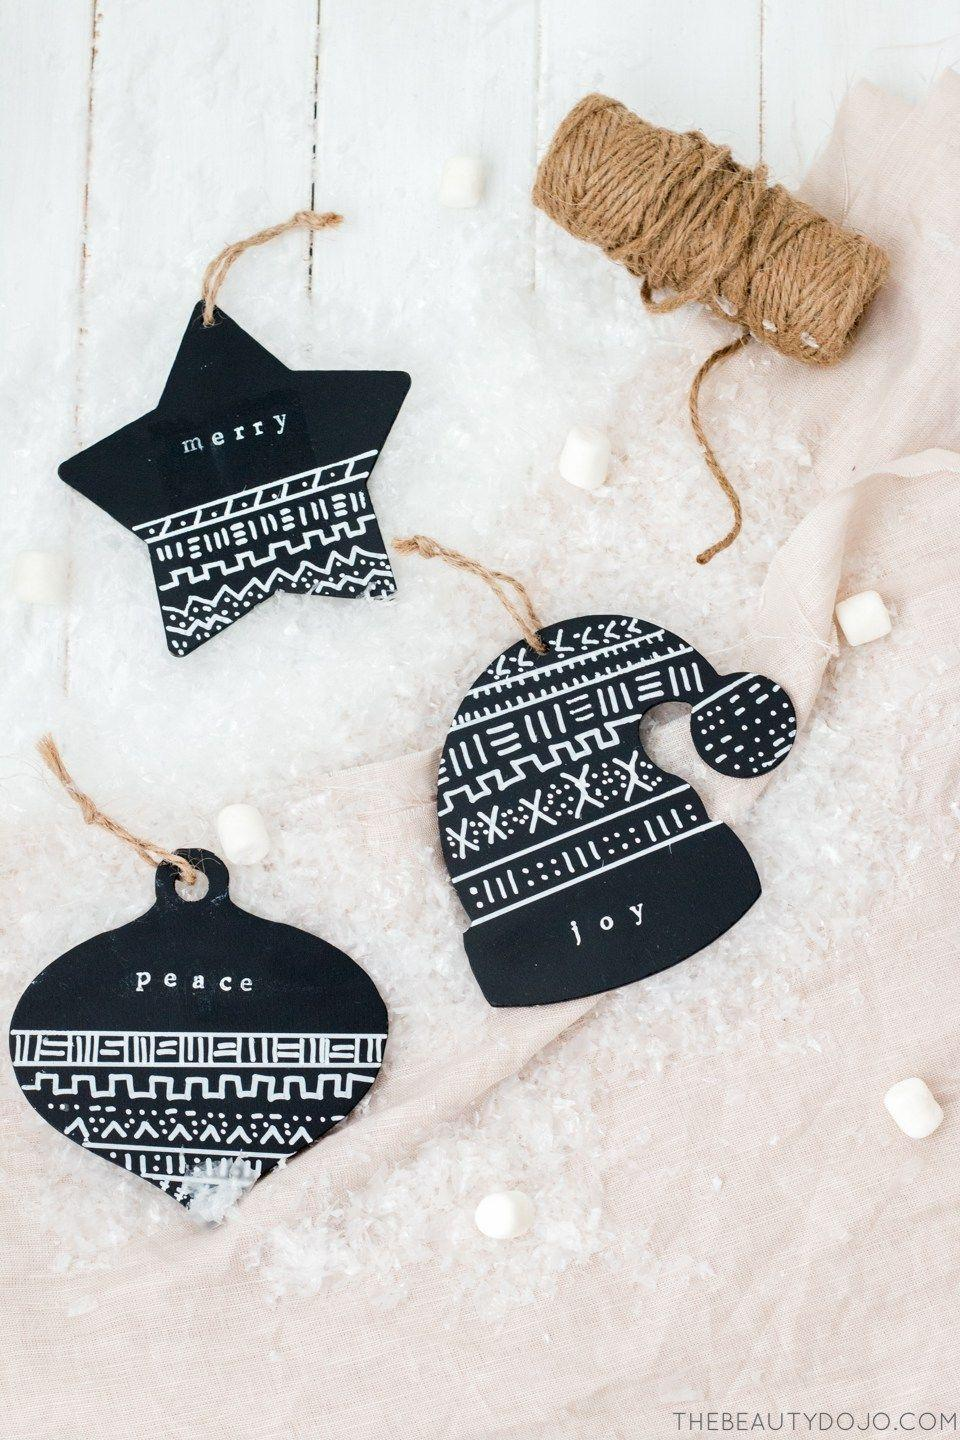 """<p>Black ornaments get a quick, easy update with a bit of white paint and some alphabet stamps. You can write just about whatever you want on these beauties!</p><p><strong>Get the tutorial at <a href=""""http://www.thebeautydojo.com/mud-cloth-ornaments/"""" rel=""""nofollow noopener"""" target=""""_blank"""" data-ylk=""""slk:The Beauty Dojo"""" class=""""link rapid-noclick-resp"""">The Beauty Dojo</a>.</strong></p><p><a class=""""link rapid-noclick-resp"""" href=""""https://www.amazon.com/Molotow-ONE4ALL-Acrylic-Marker-127-102/dp/B0044D5NPQ?tag=syn-yahoo-20&ascsubtag=%5Bartid%7C10050.g.1070%5Bsrc%7Cyahoo-us"""" rel=""""nofollow noopener"""" target=""""_blank"""" data-ylk=""""slk:SHOP WHITE PAINT PENS""""><strong>SHOP WHITE PAINT PENS</strong> </a></p>"""